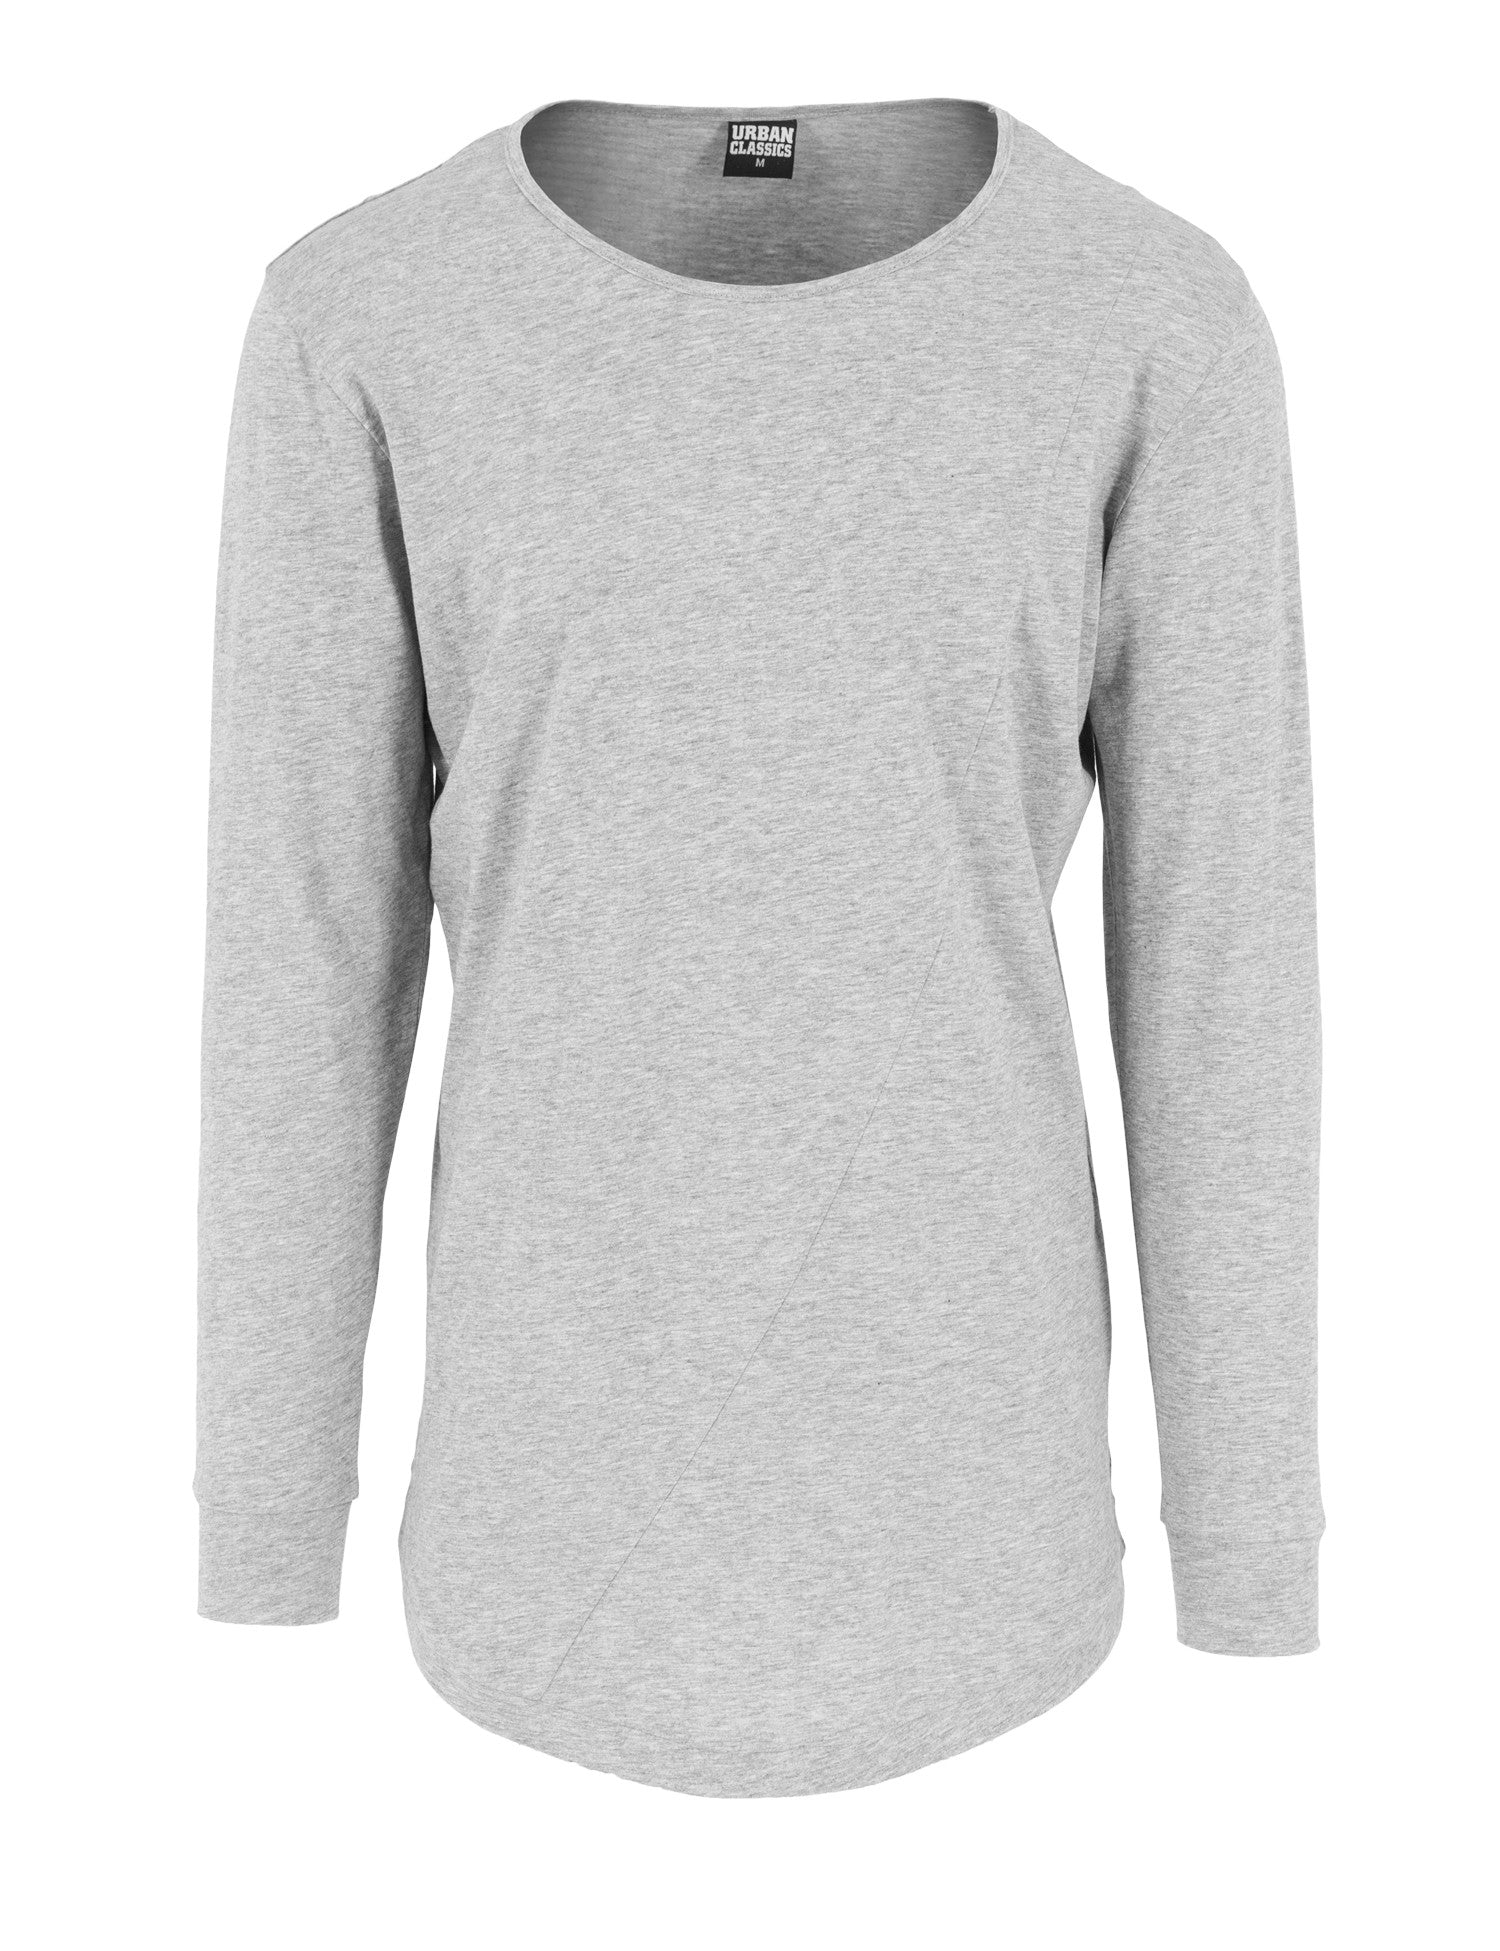 Long Shaped Fashion L/S Tee TB1101 Grey